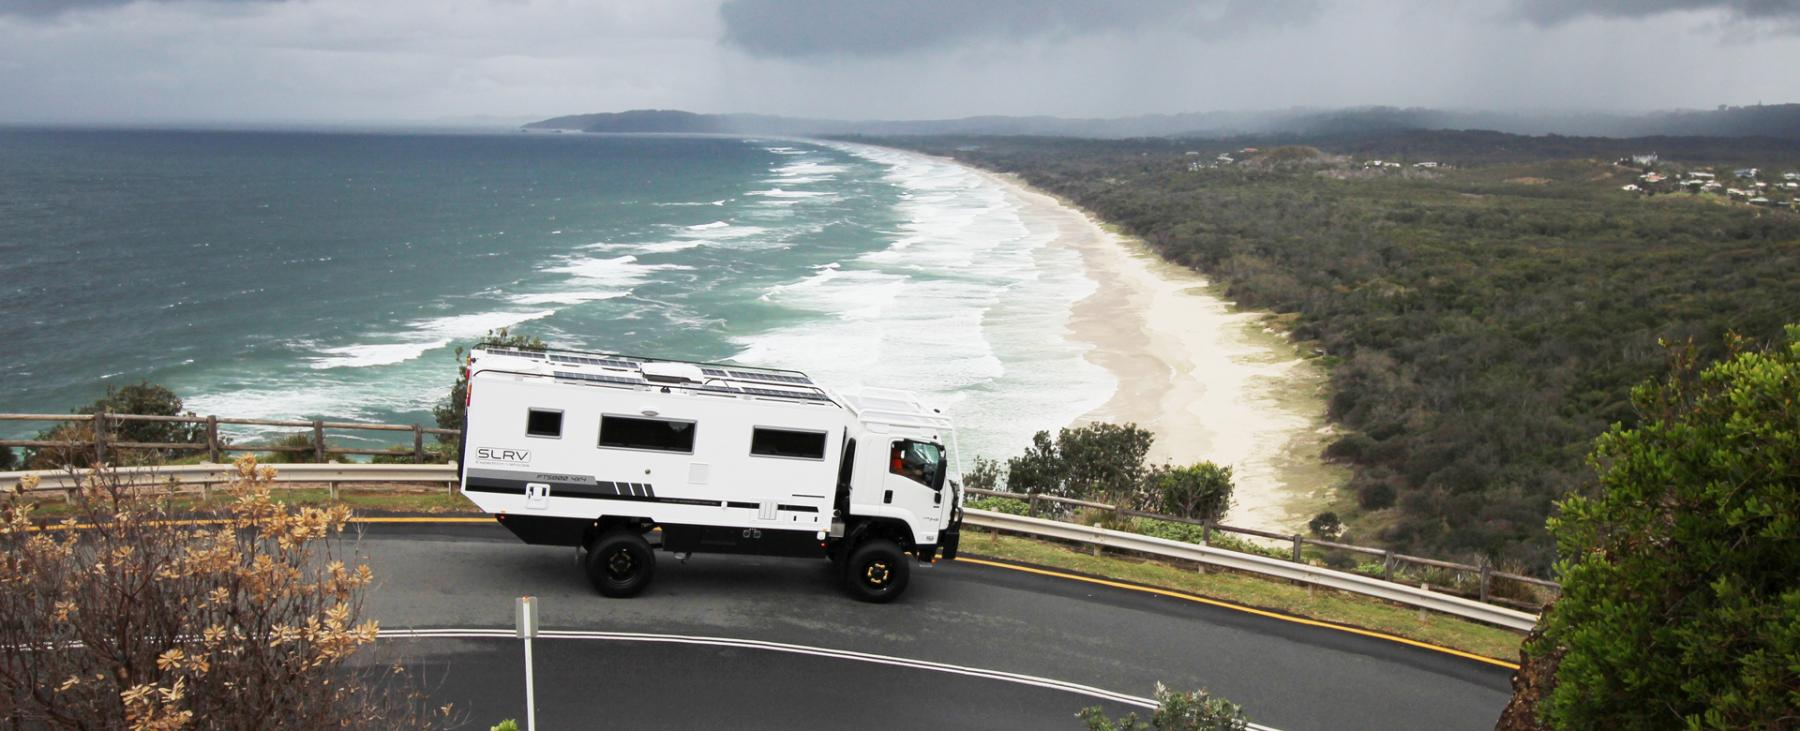 FTS800 4x4 | Luxury 4x4 Motorhome |SLRV Expedition Vehicles